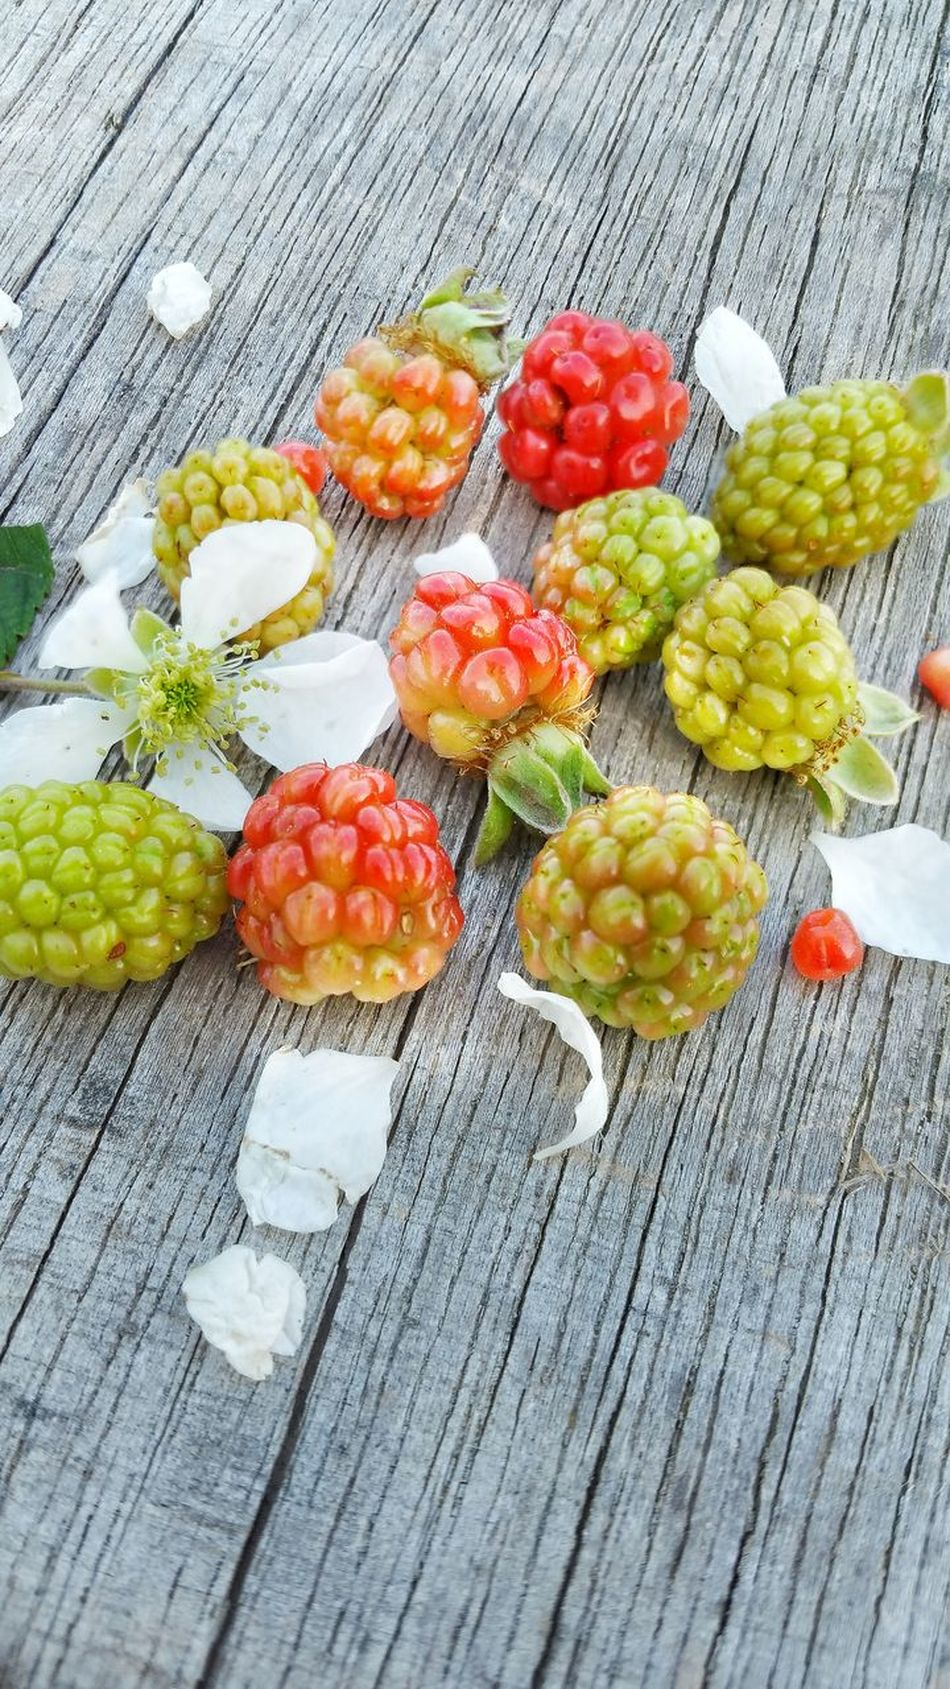 Close-up Berry Fruit Variation Day Outdoors Freshness Fruit Unripe Healthy Eating Nature Wild Berries High Angle View Room For Text Room For Copy Backgrounds Food Weathered Wood Blackberry Flower Ready-to-eat Group Wild Blackberries Dew Berries Bunch Wood - Material